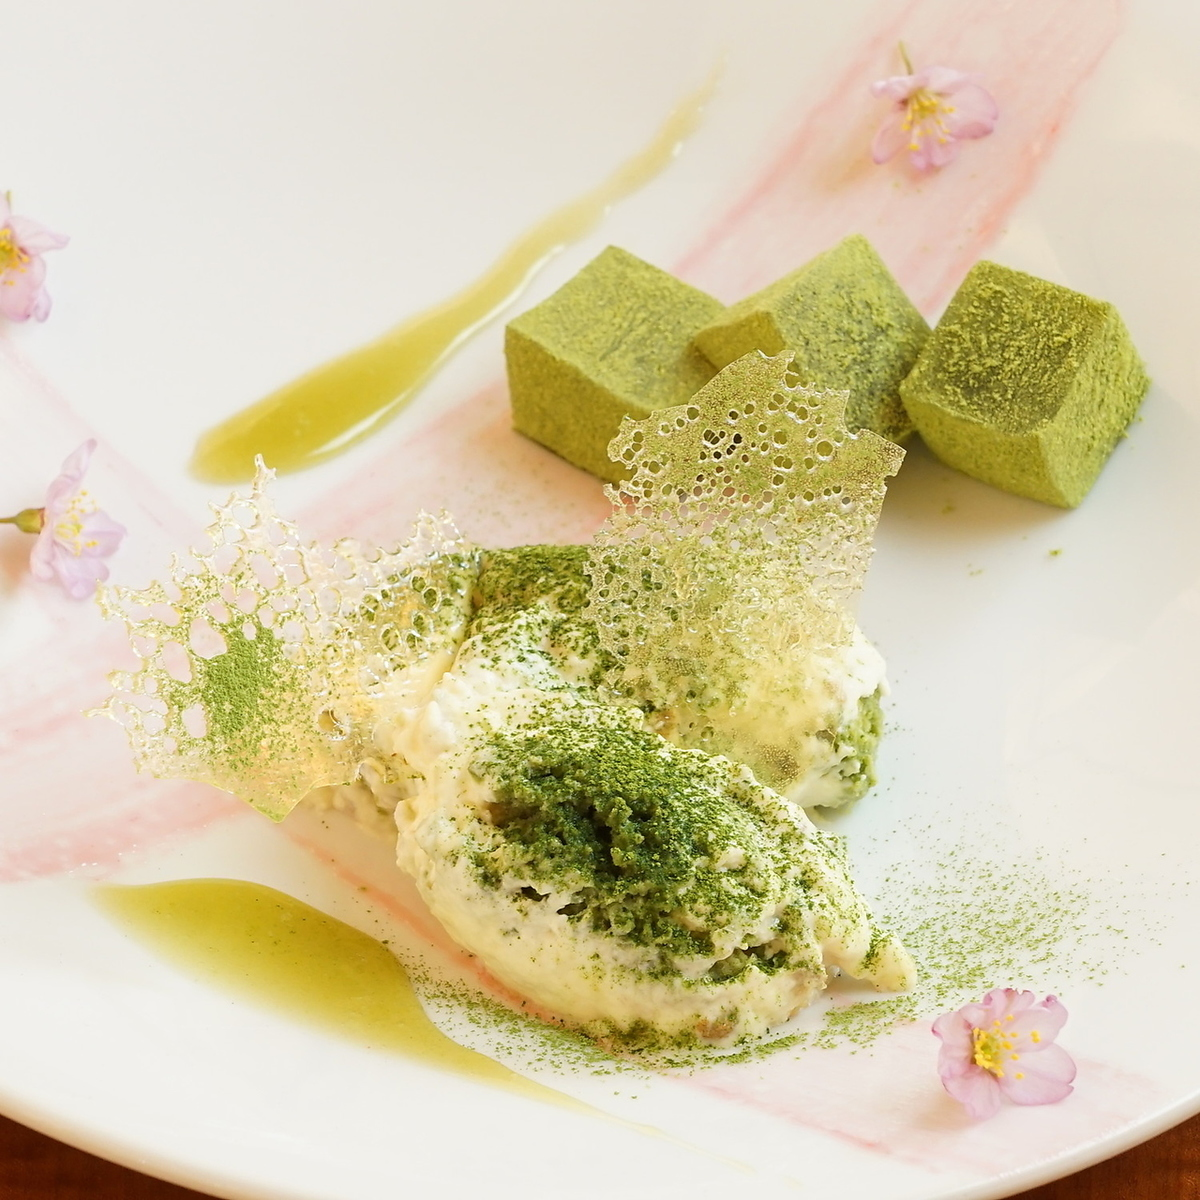 Soy tiramisu of Ise Matcha with carefully selected eggs from Mie Prefecture